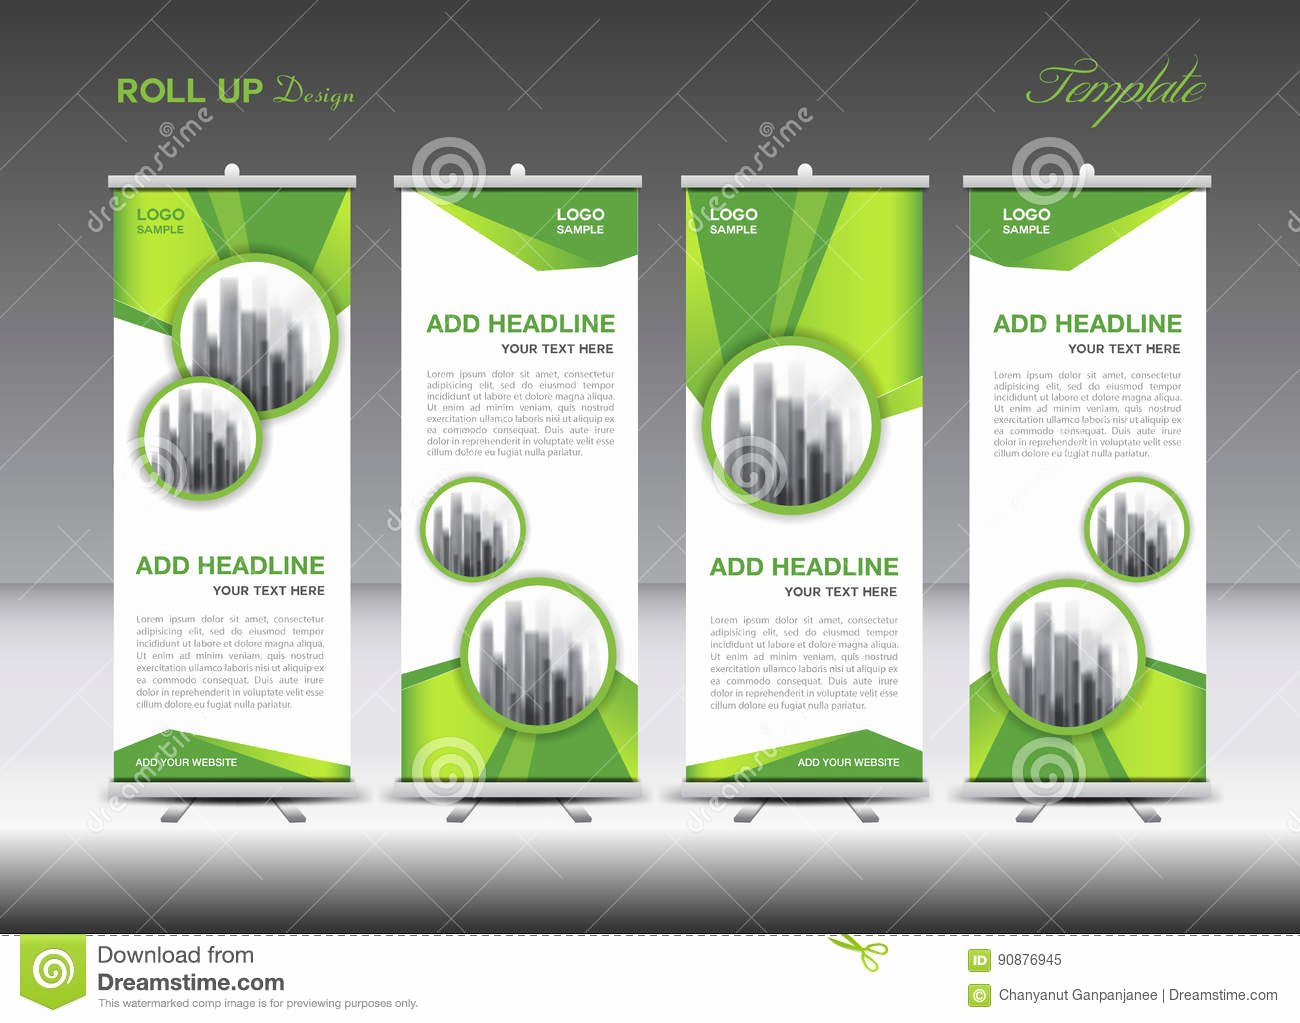 Pull Up Banner Template Elegant Green and White Roll Up Banner Template Design Stock